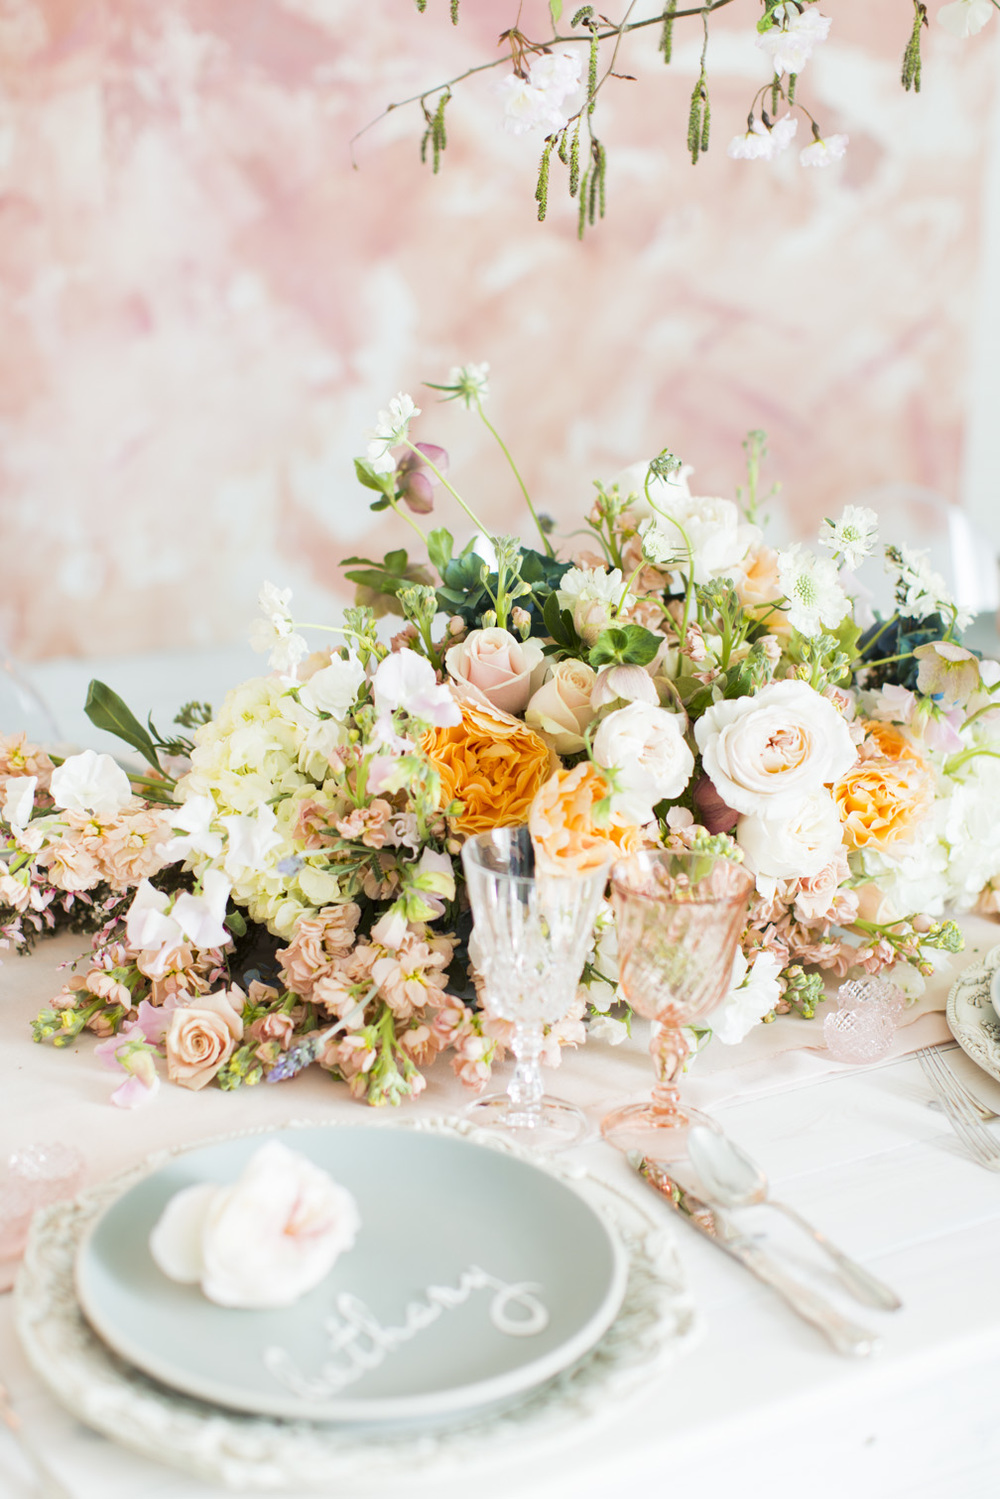 Monet Inspired Wedding Details | Michelle Leo Events